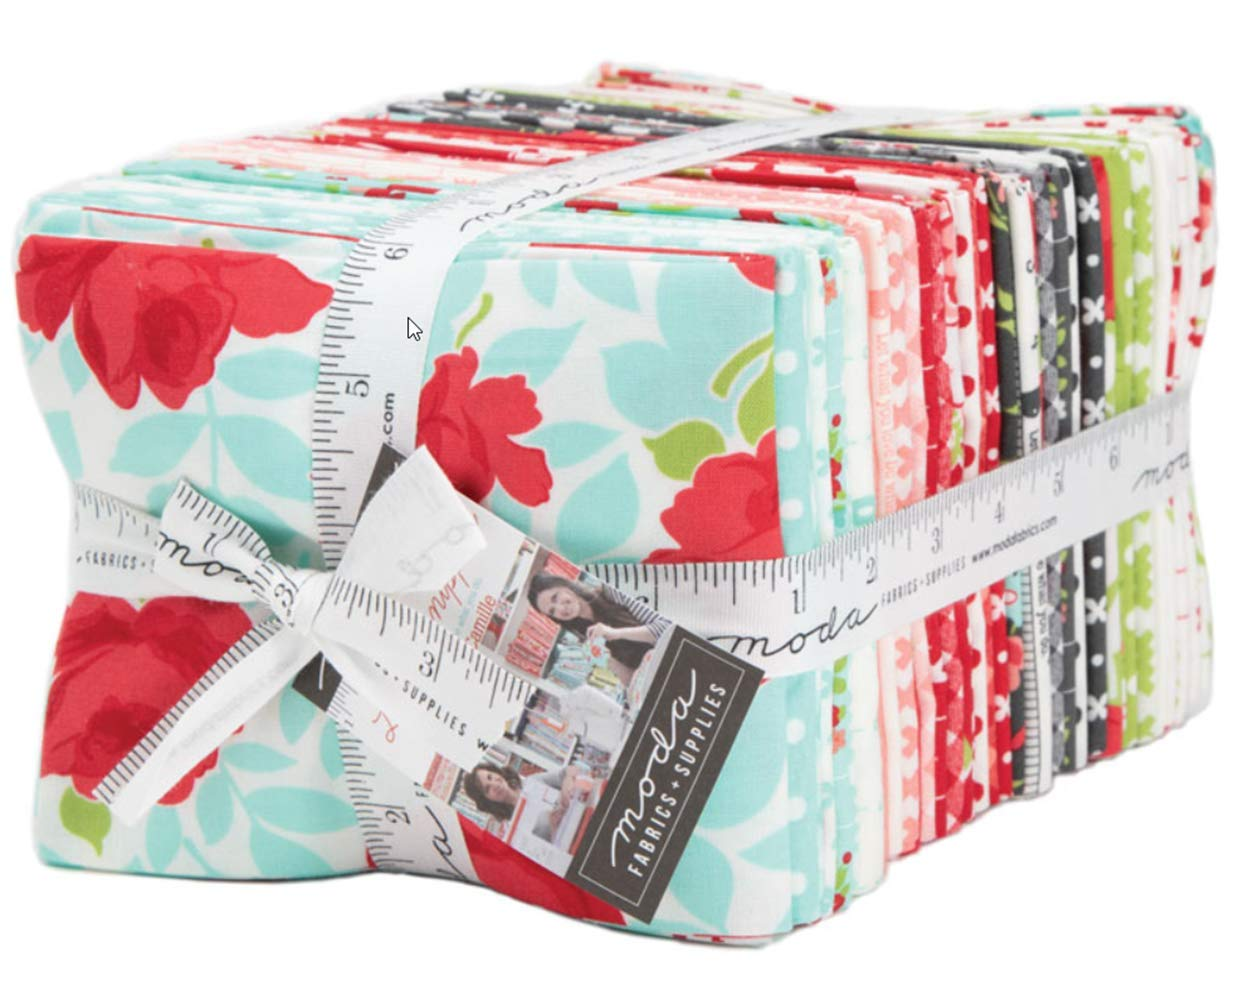 Little Snippets 40 Fat Quarter Bundle by Bonnie & Camille for Moda Fabrics 55180AB